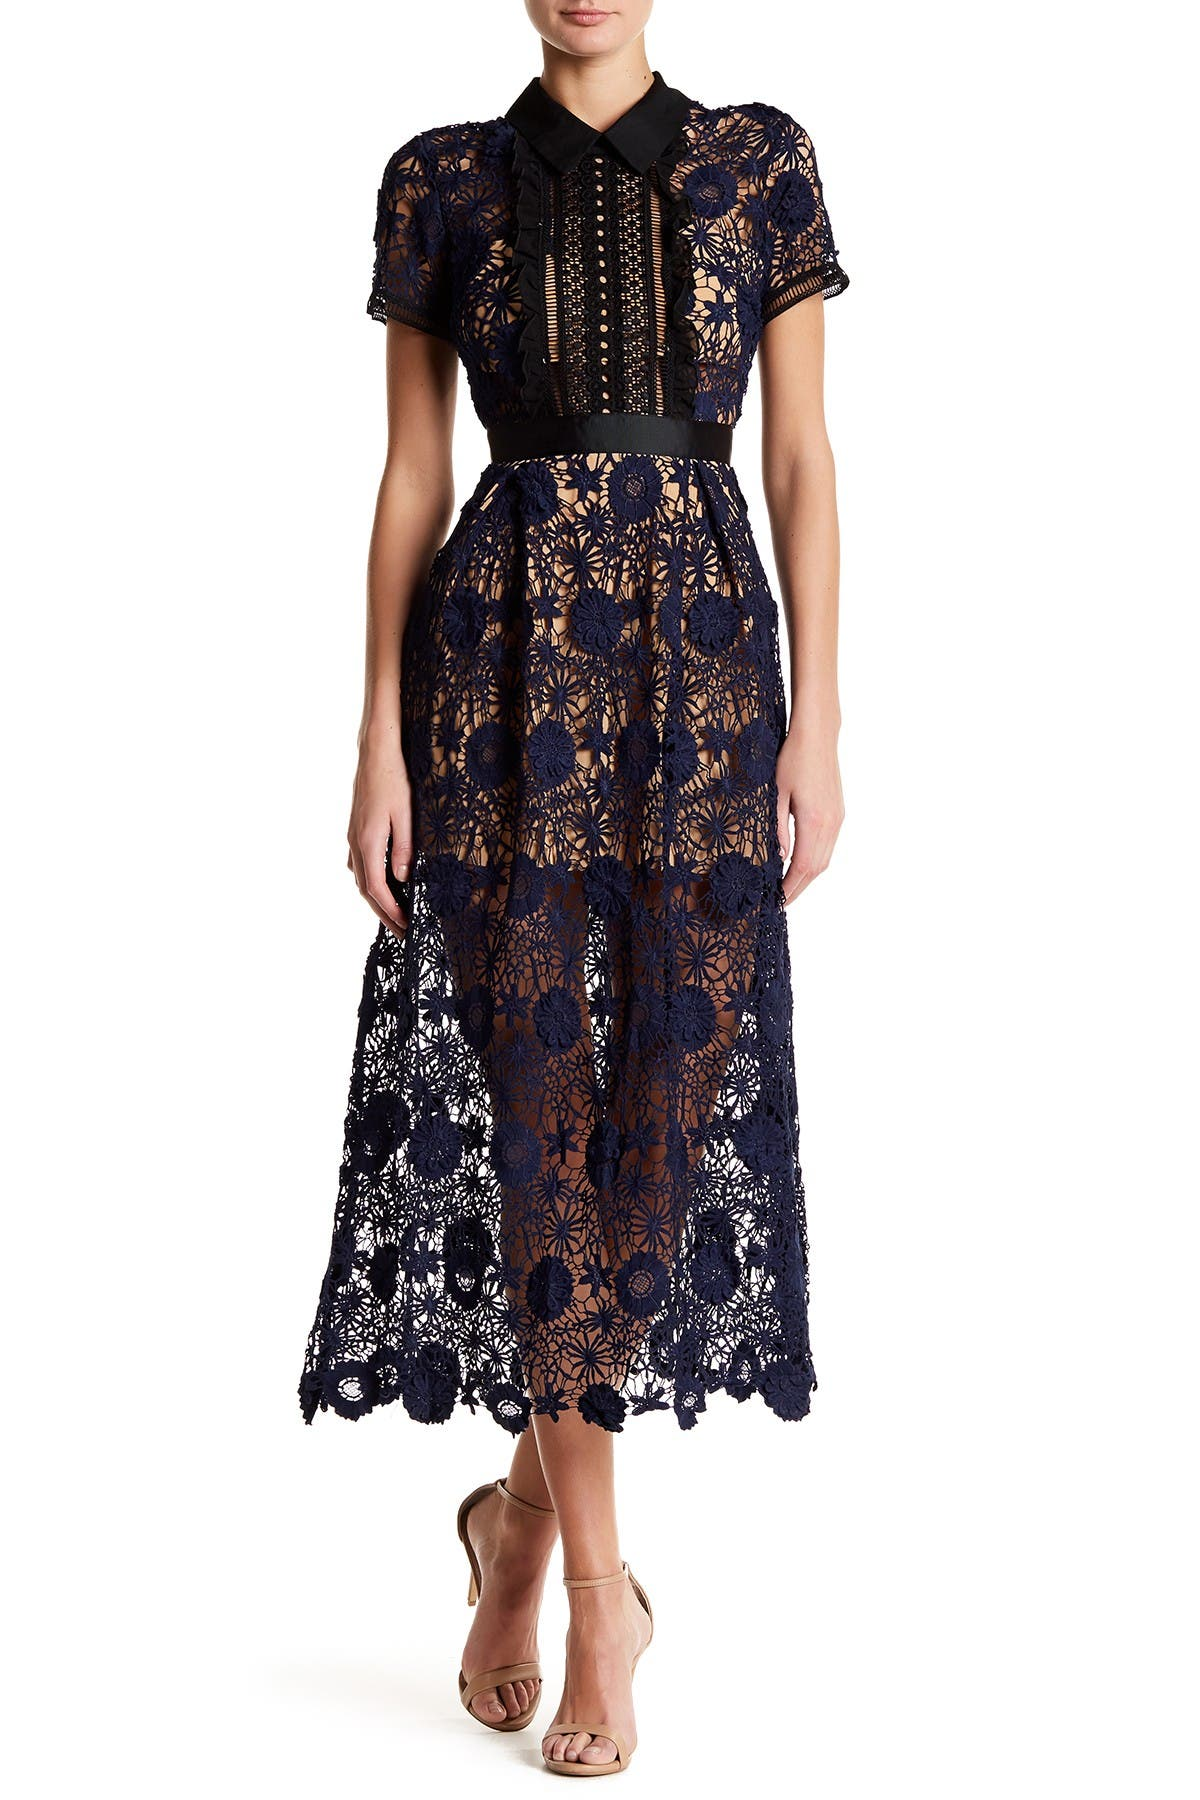 Image of Few Moda Lace Yoke Midi Dress